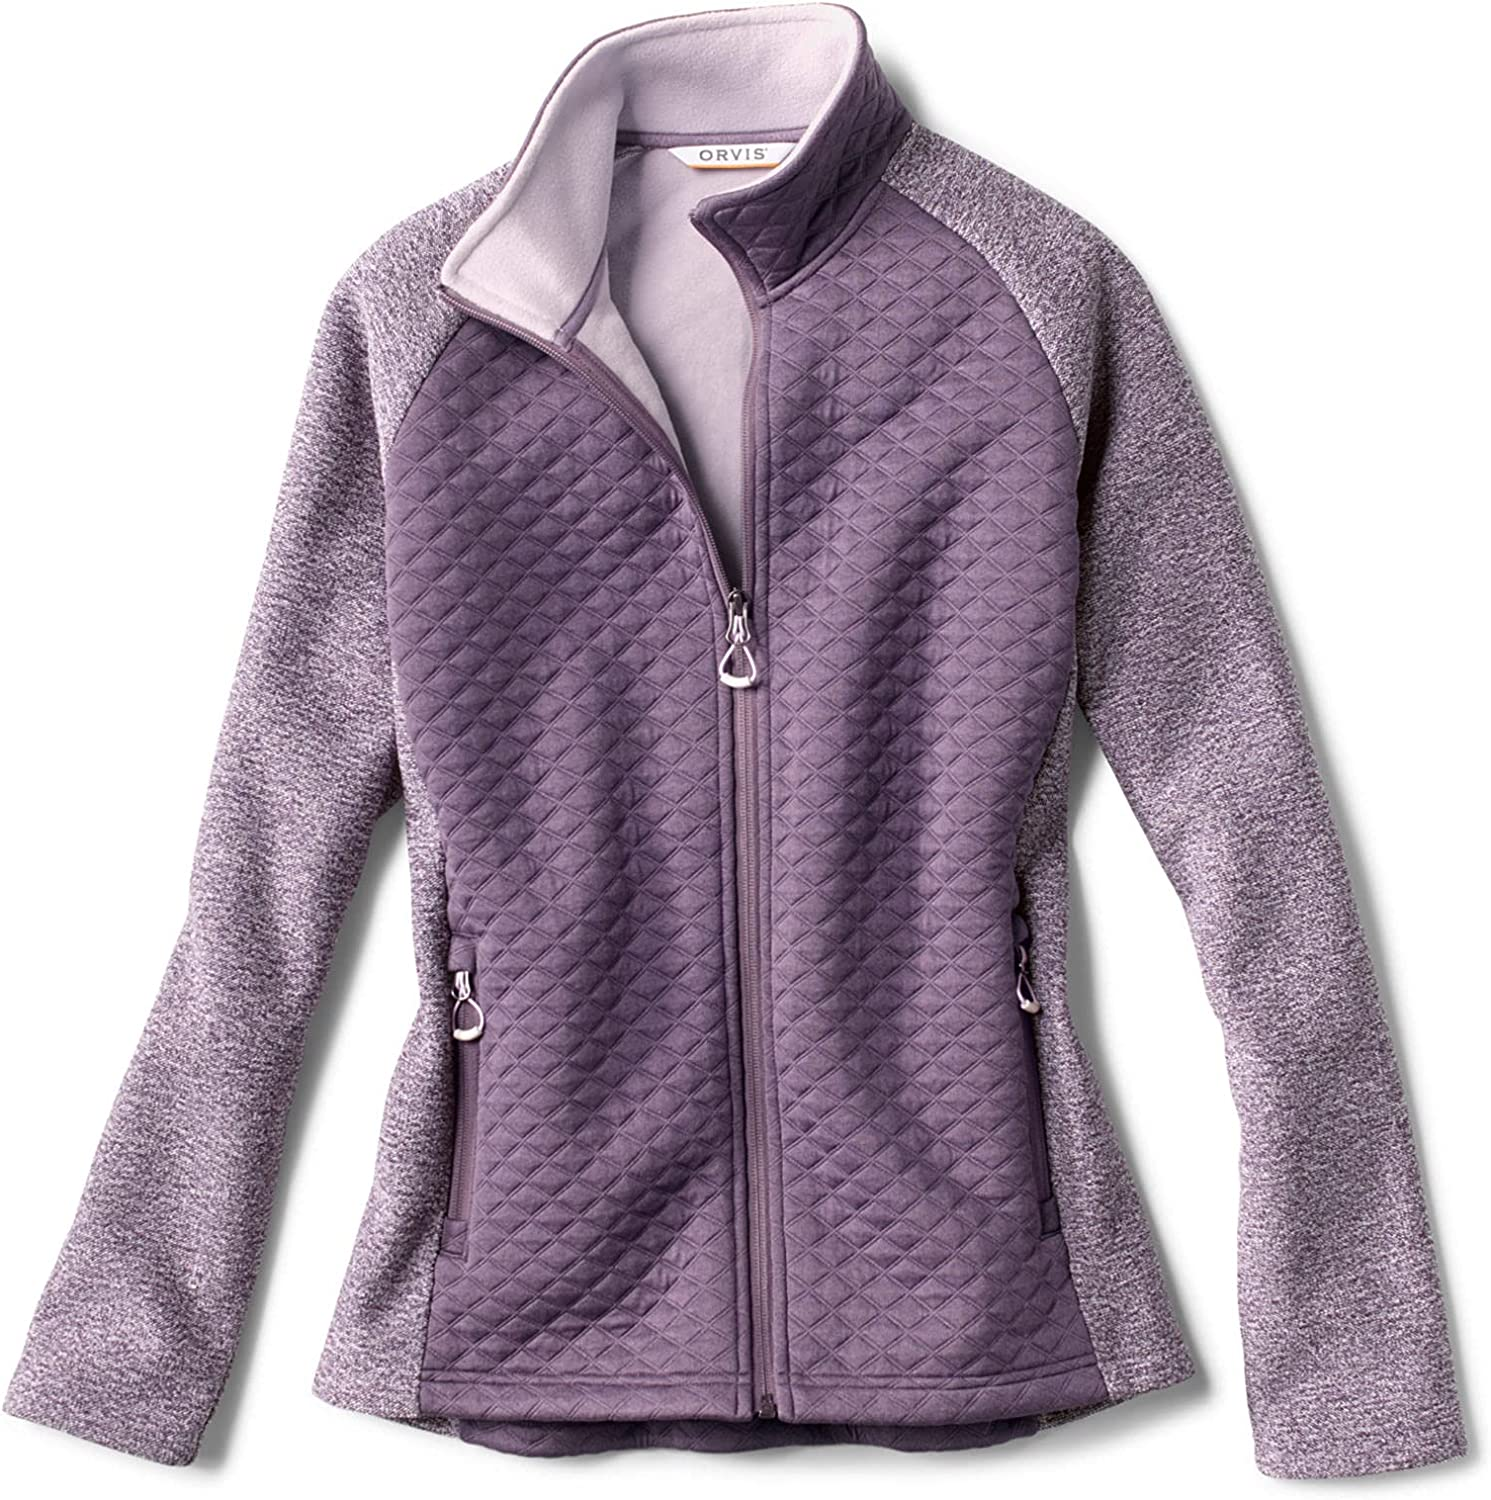 Orvis Women's Tech Quilted Hybrid Jacket